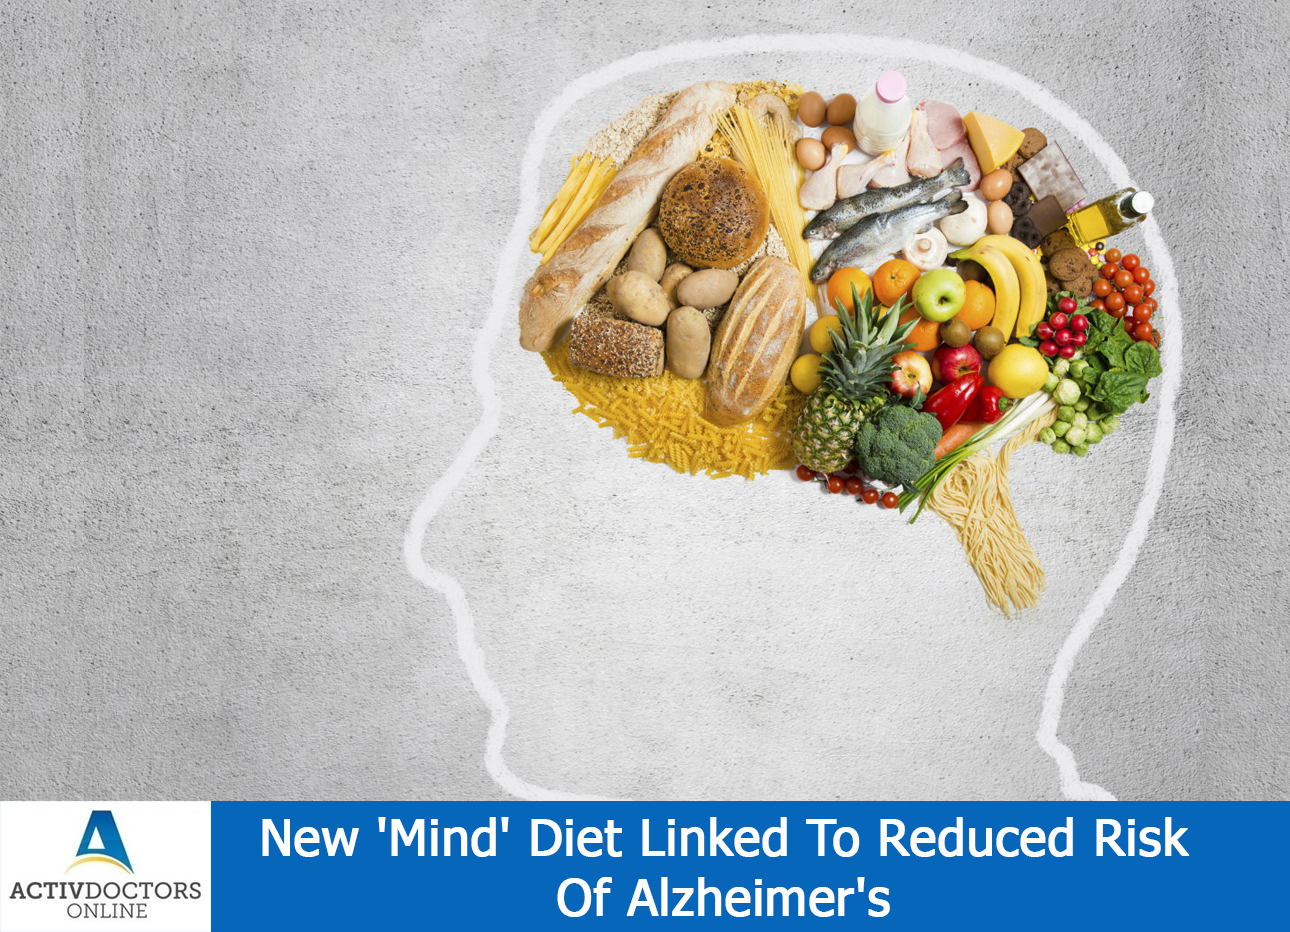 New 'Mind' Diet Linked To Reduced Risk Of Alzheimer's